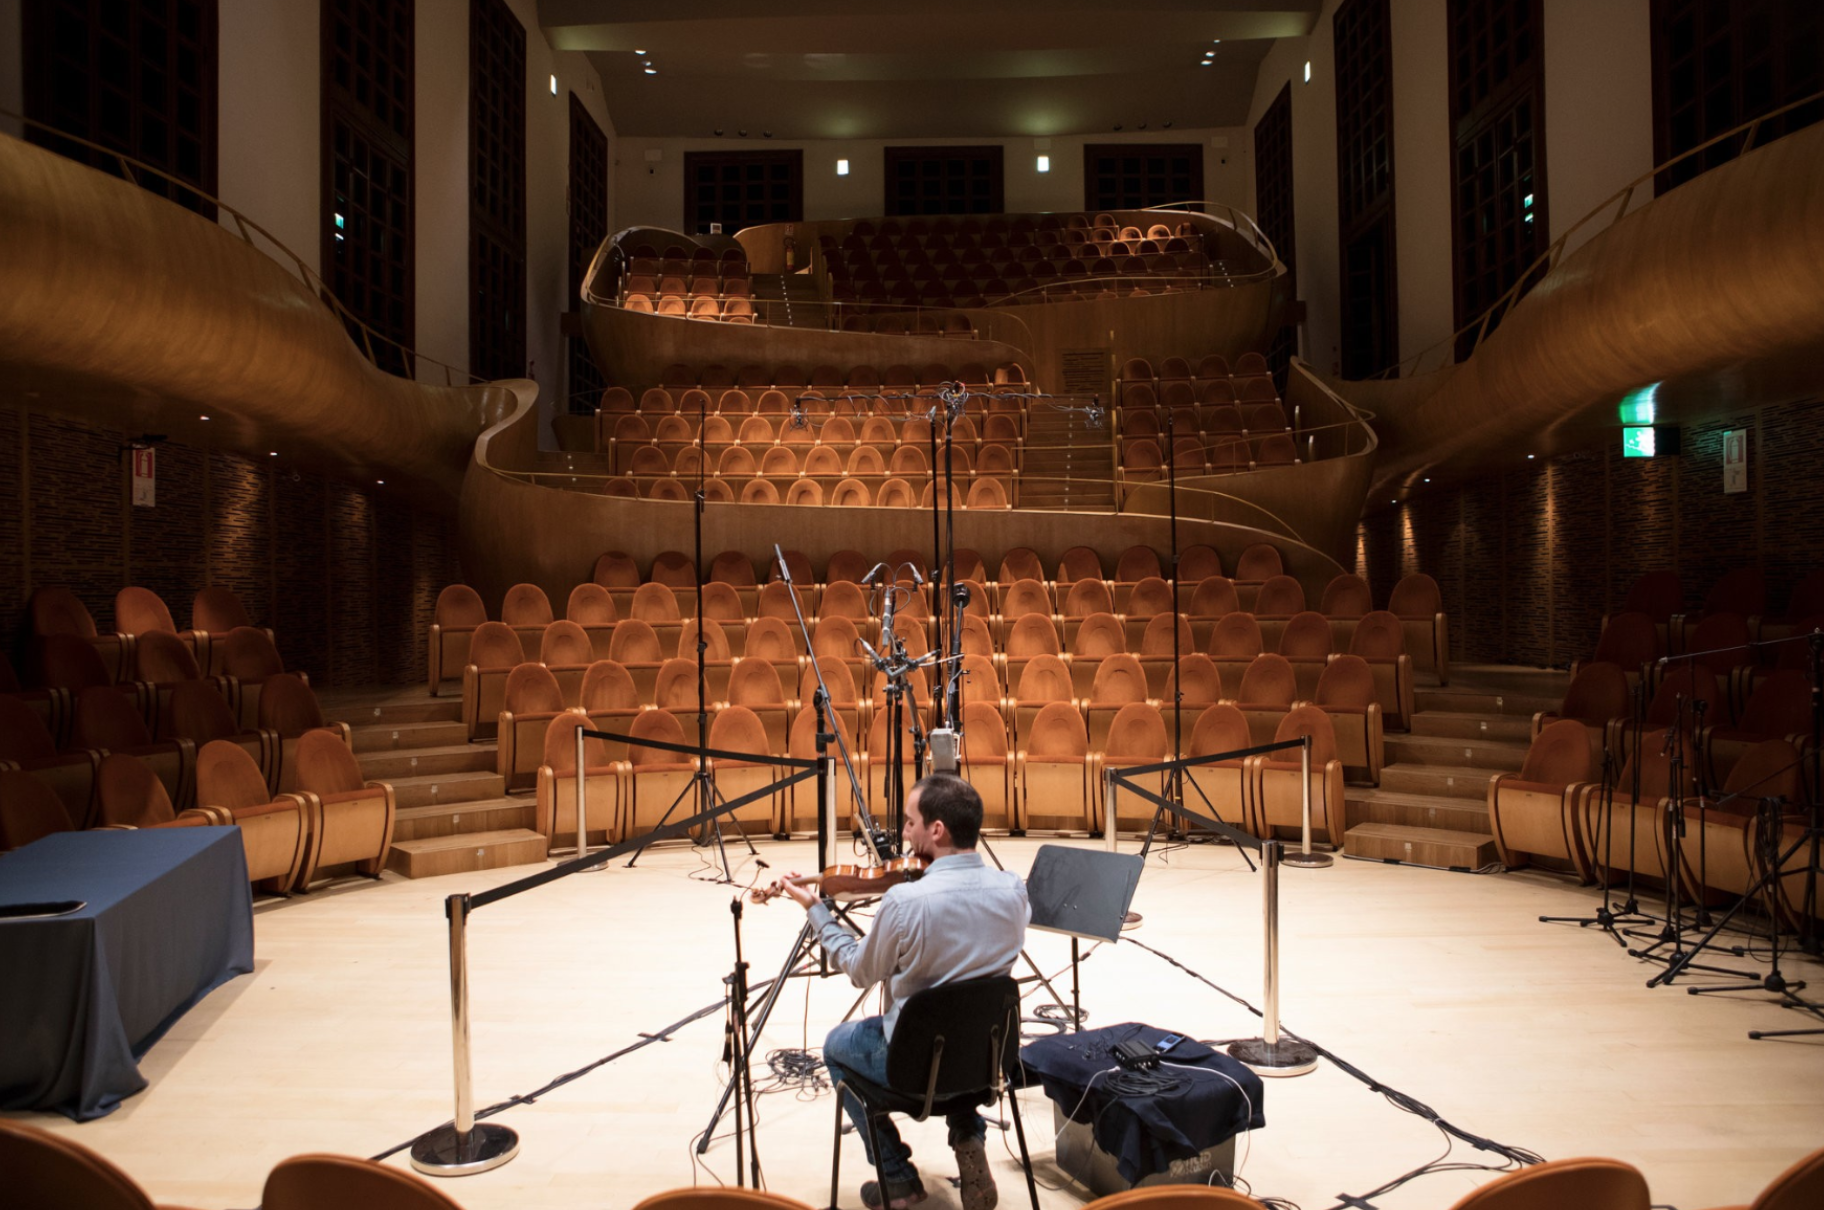 The 464-seat Auditorium Arvedi was designed around the sound of the instruments. For the recordings, every light bulb in the hall was unscrewed to eliminate a faint buzzing sound. Credit: Isabella de Maddalena for The New York Times